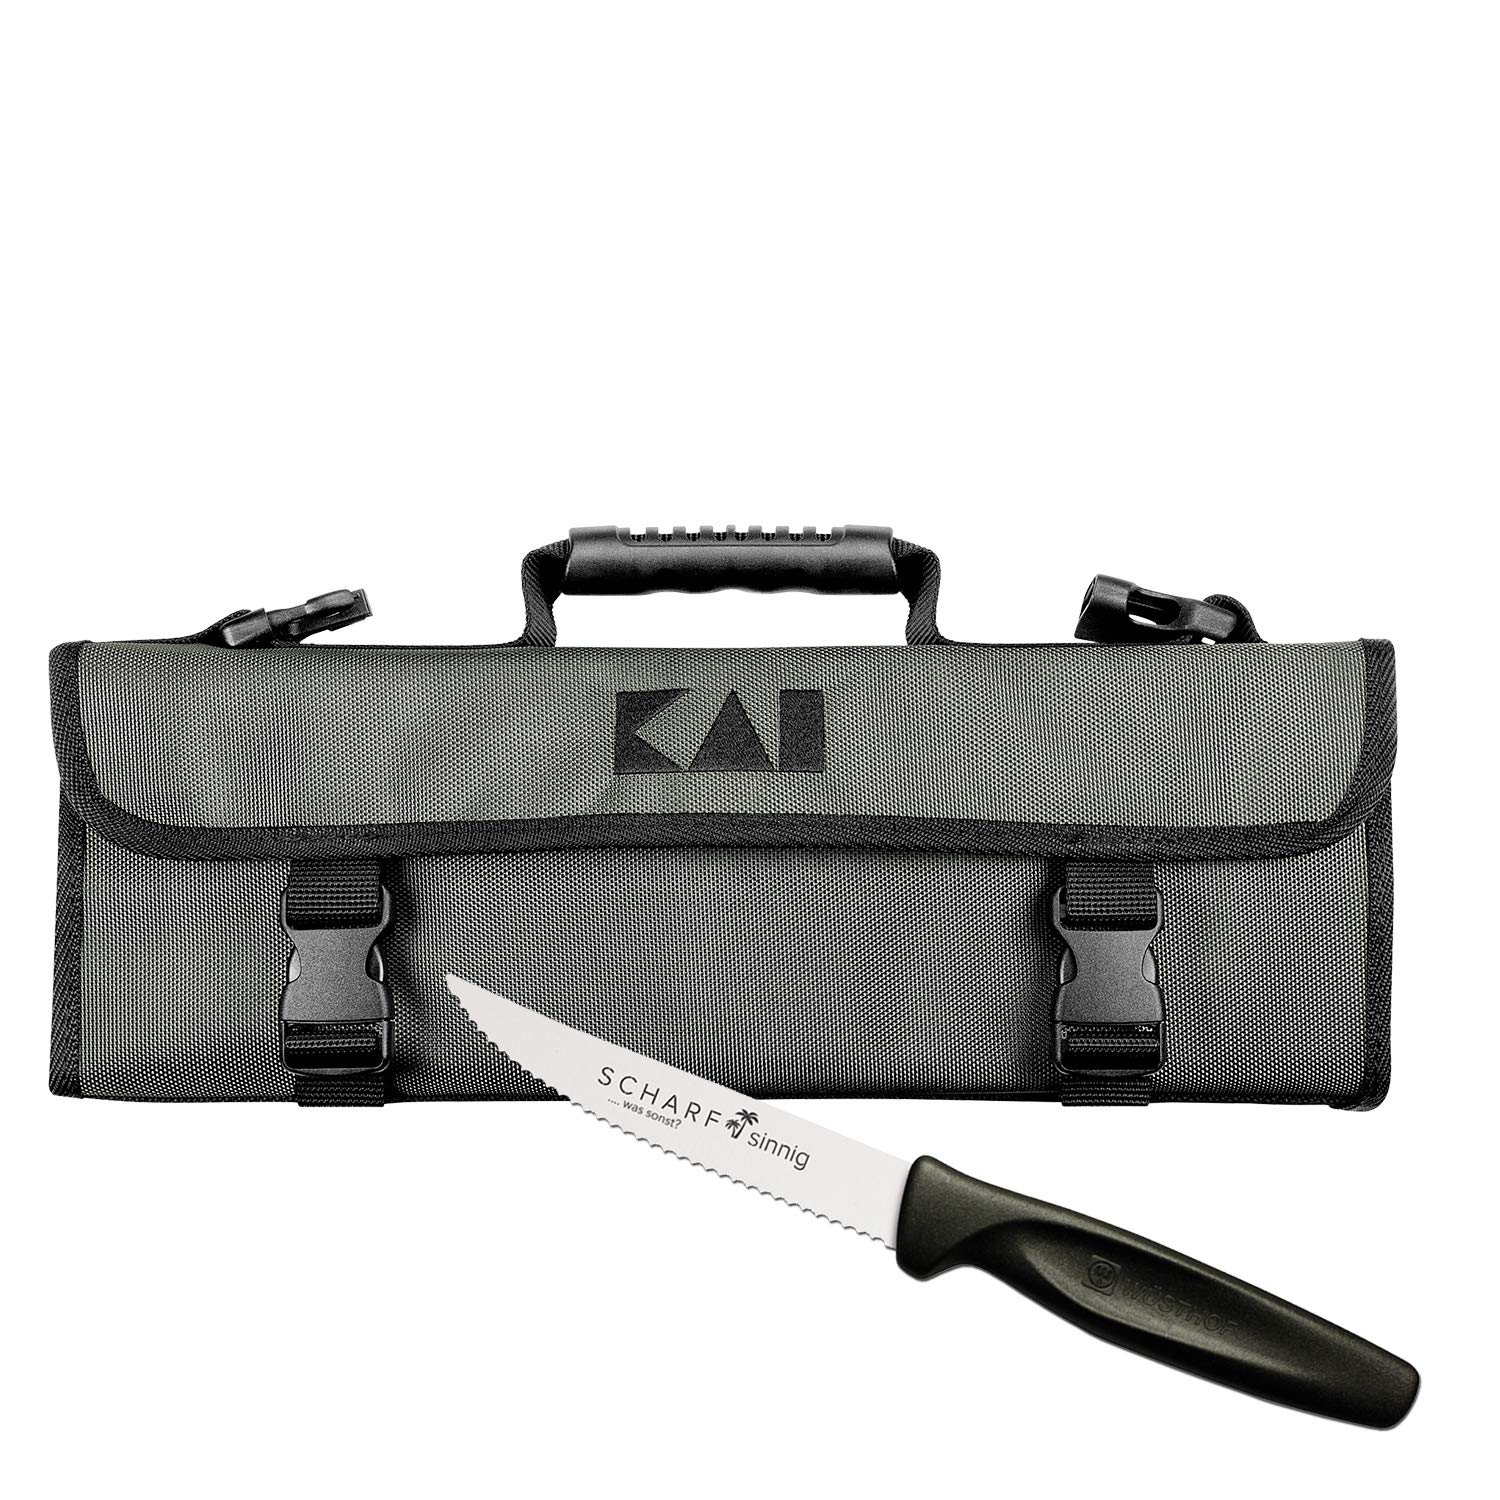 Kai Cuchillo funda para 5 Cuchillo shun DM de 0781 New ...